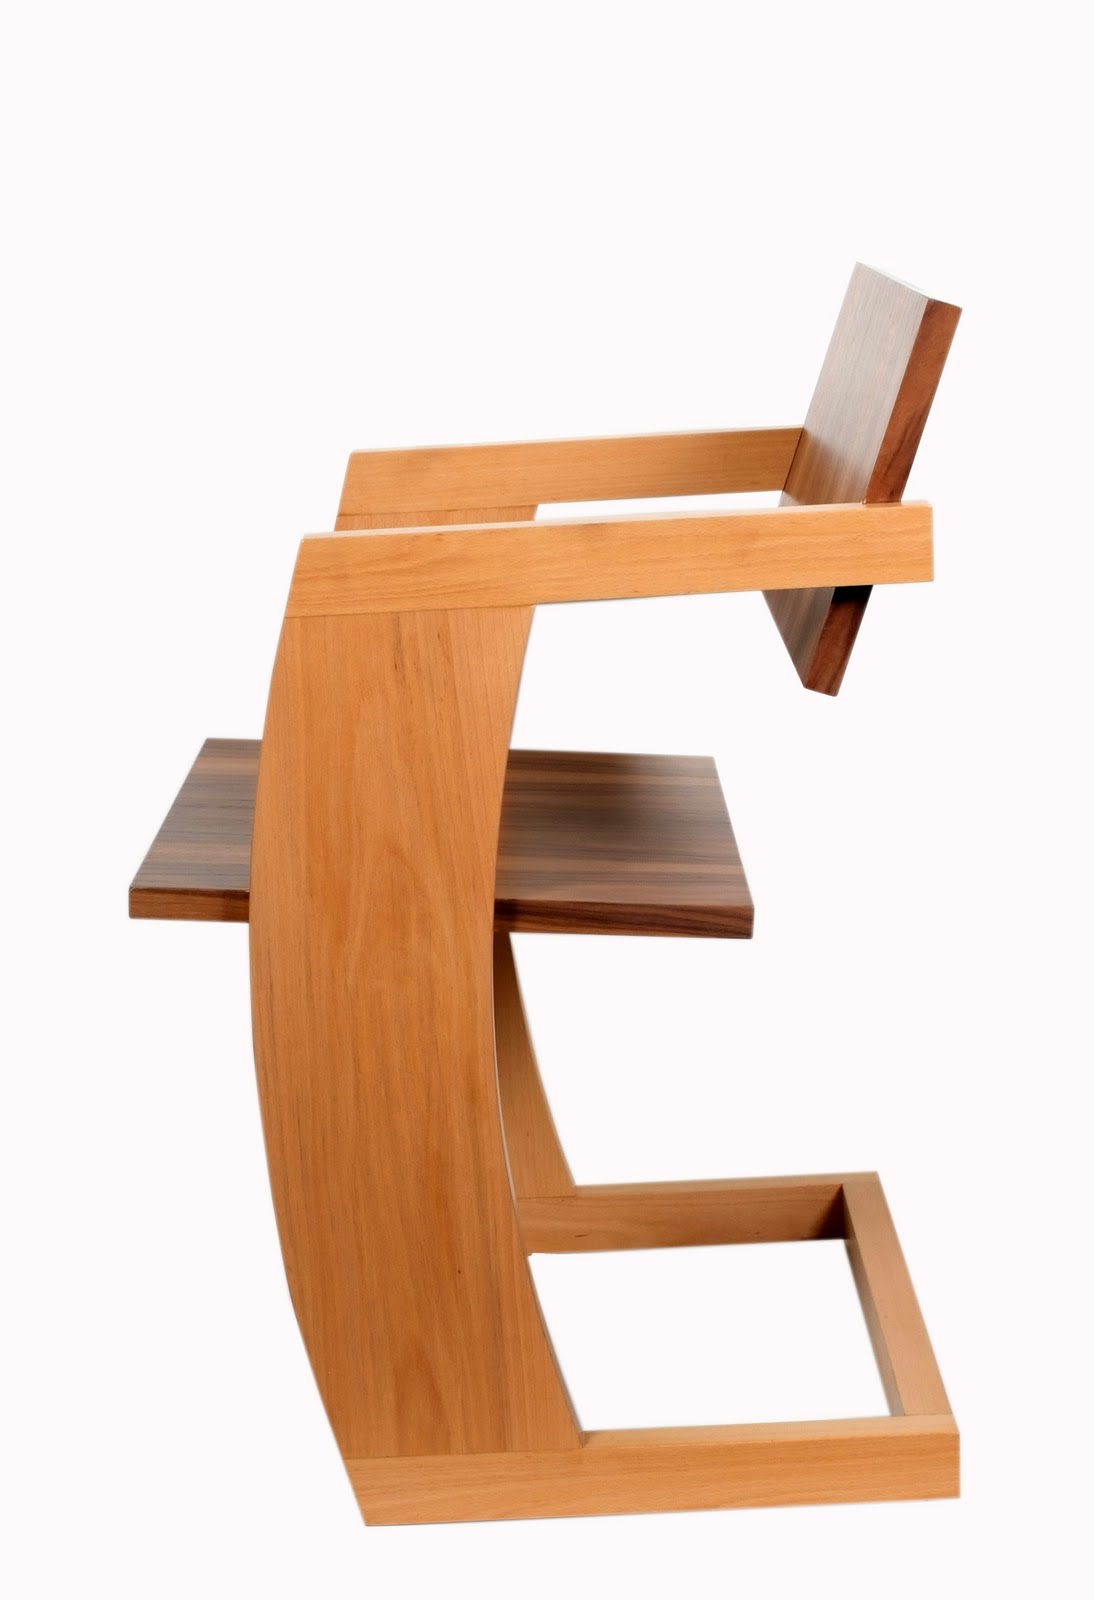 New chair design ioli chair derxis woodworking for New model chair design